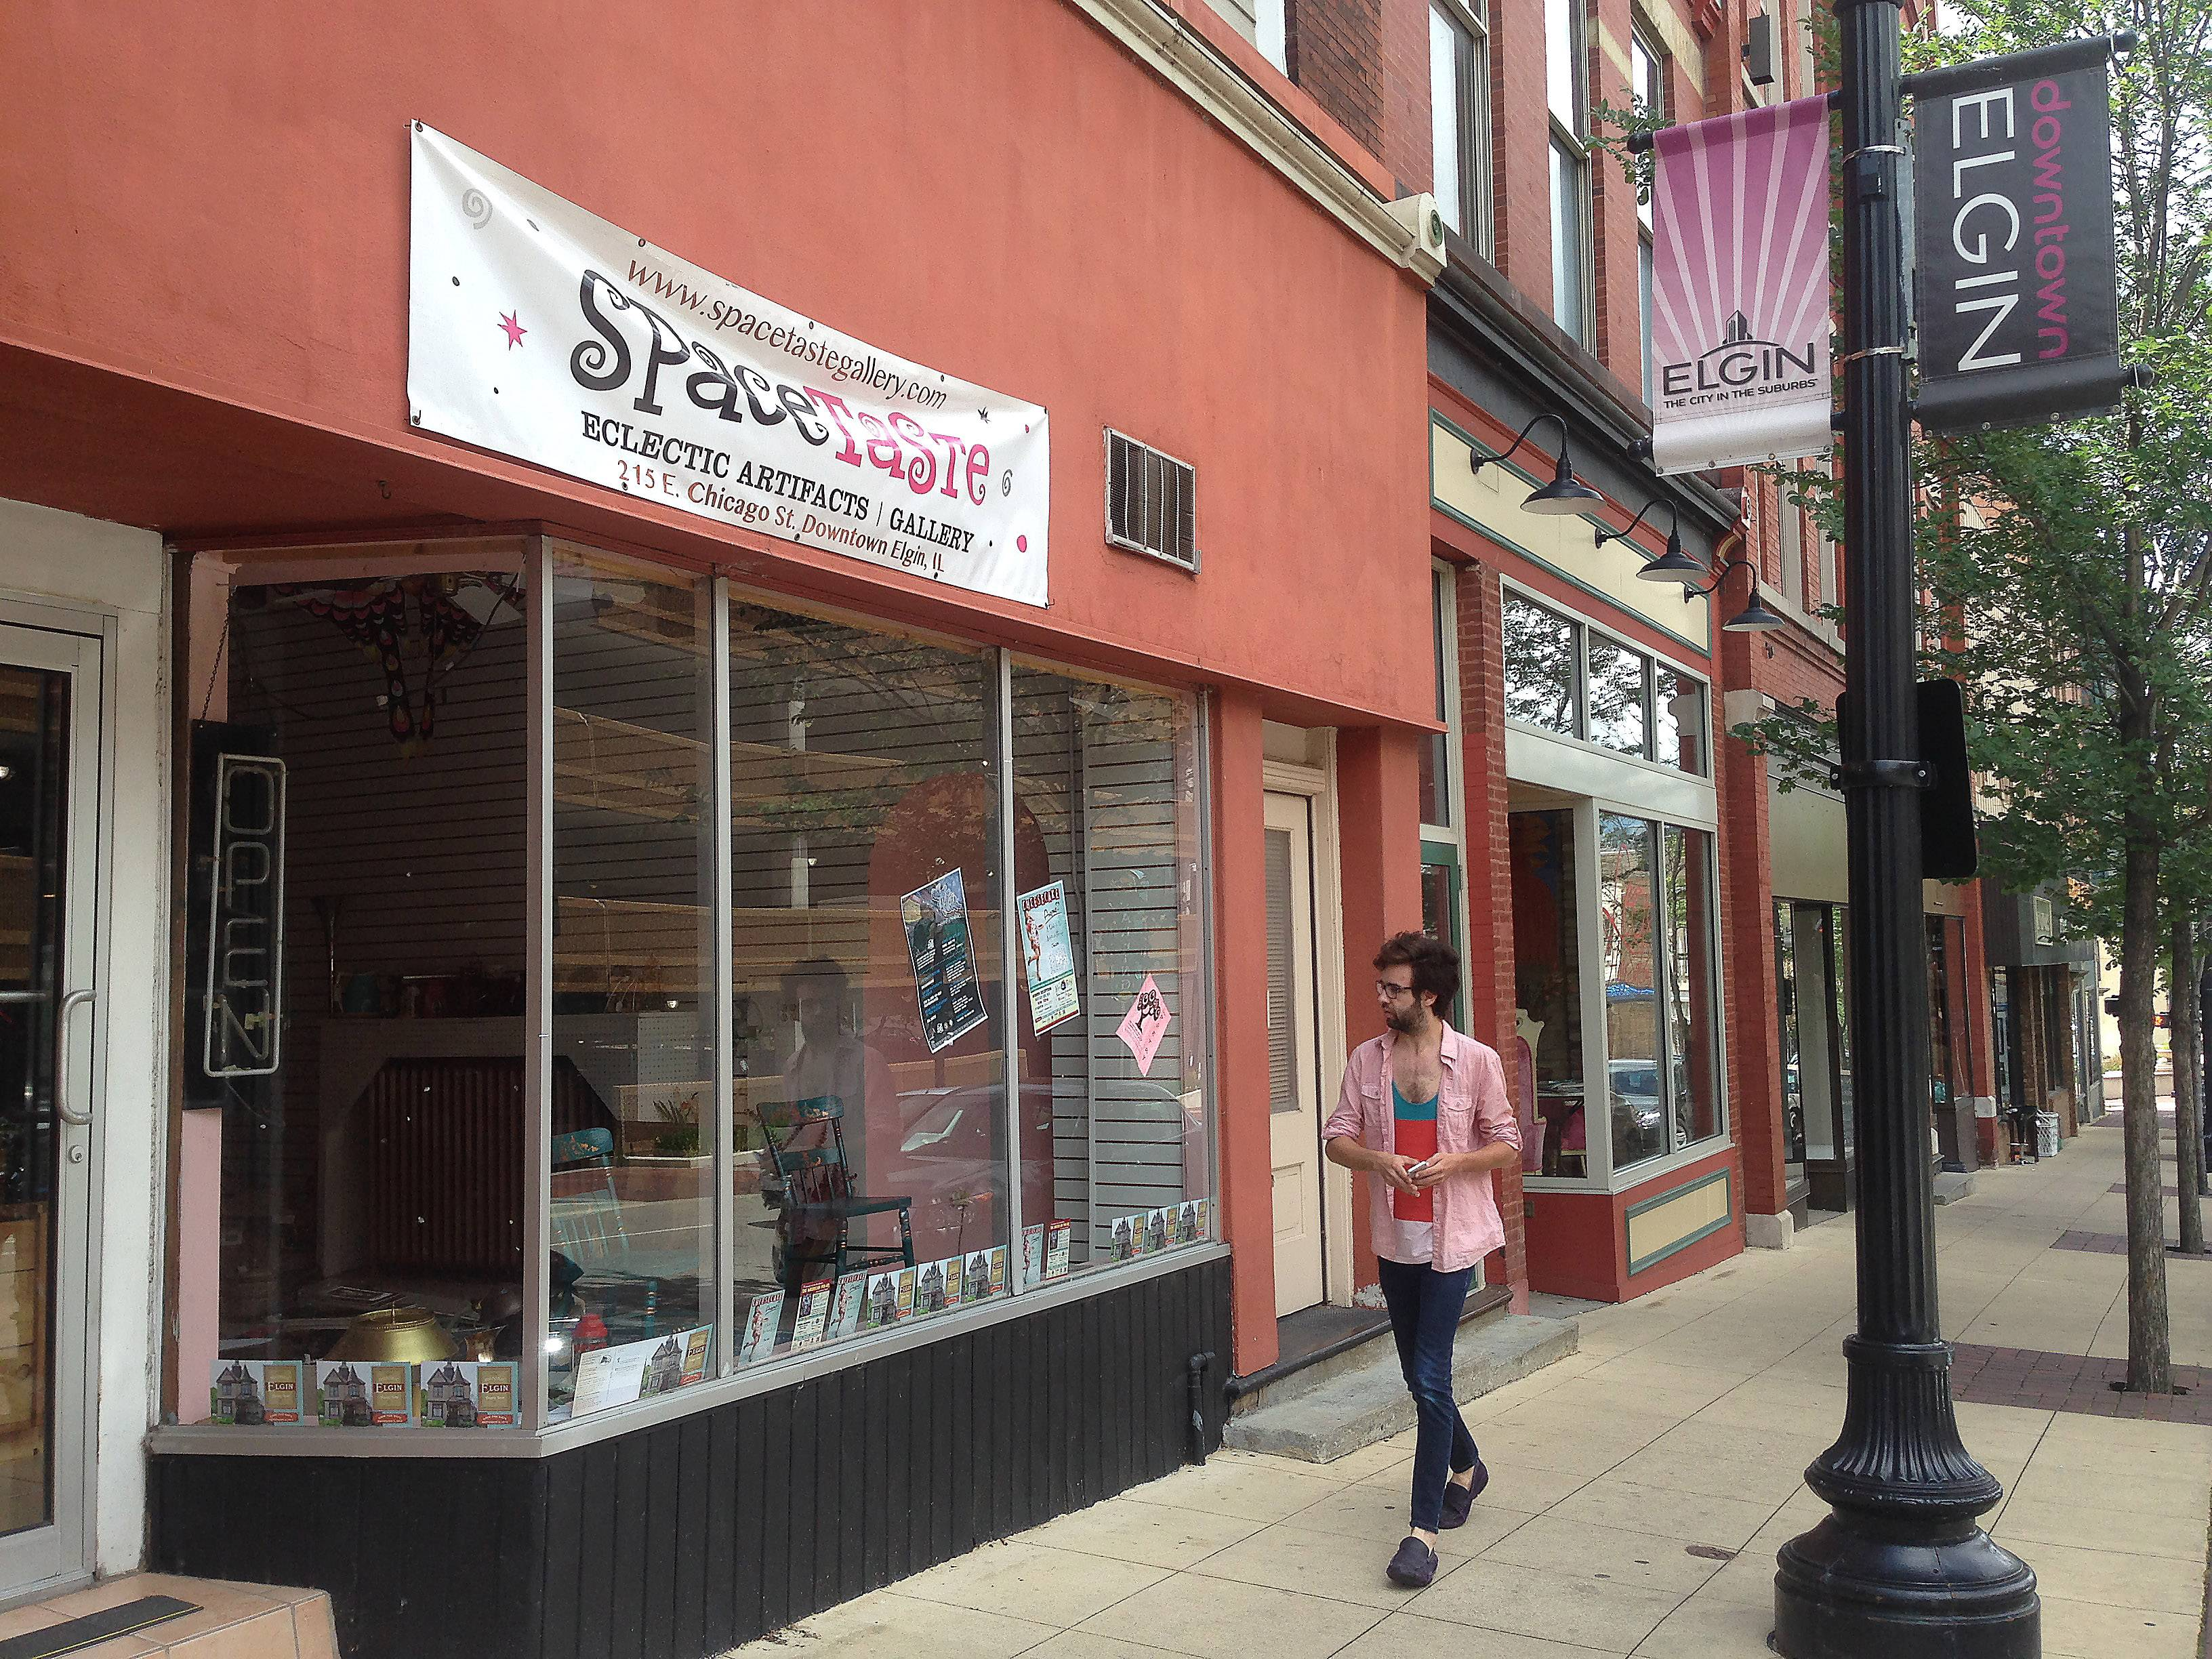 Spacetaste Gallery has moved out of 215 E. Chicago St. in downtown Elgin and will be replaced by Mr. Cheaps Mattress, now at 213 Walnut Ave. in Elgin.